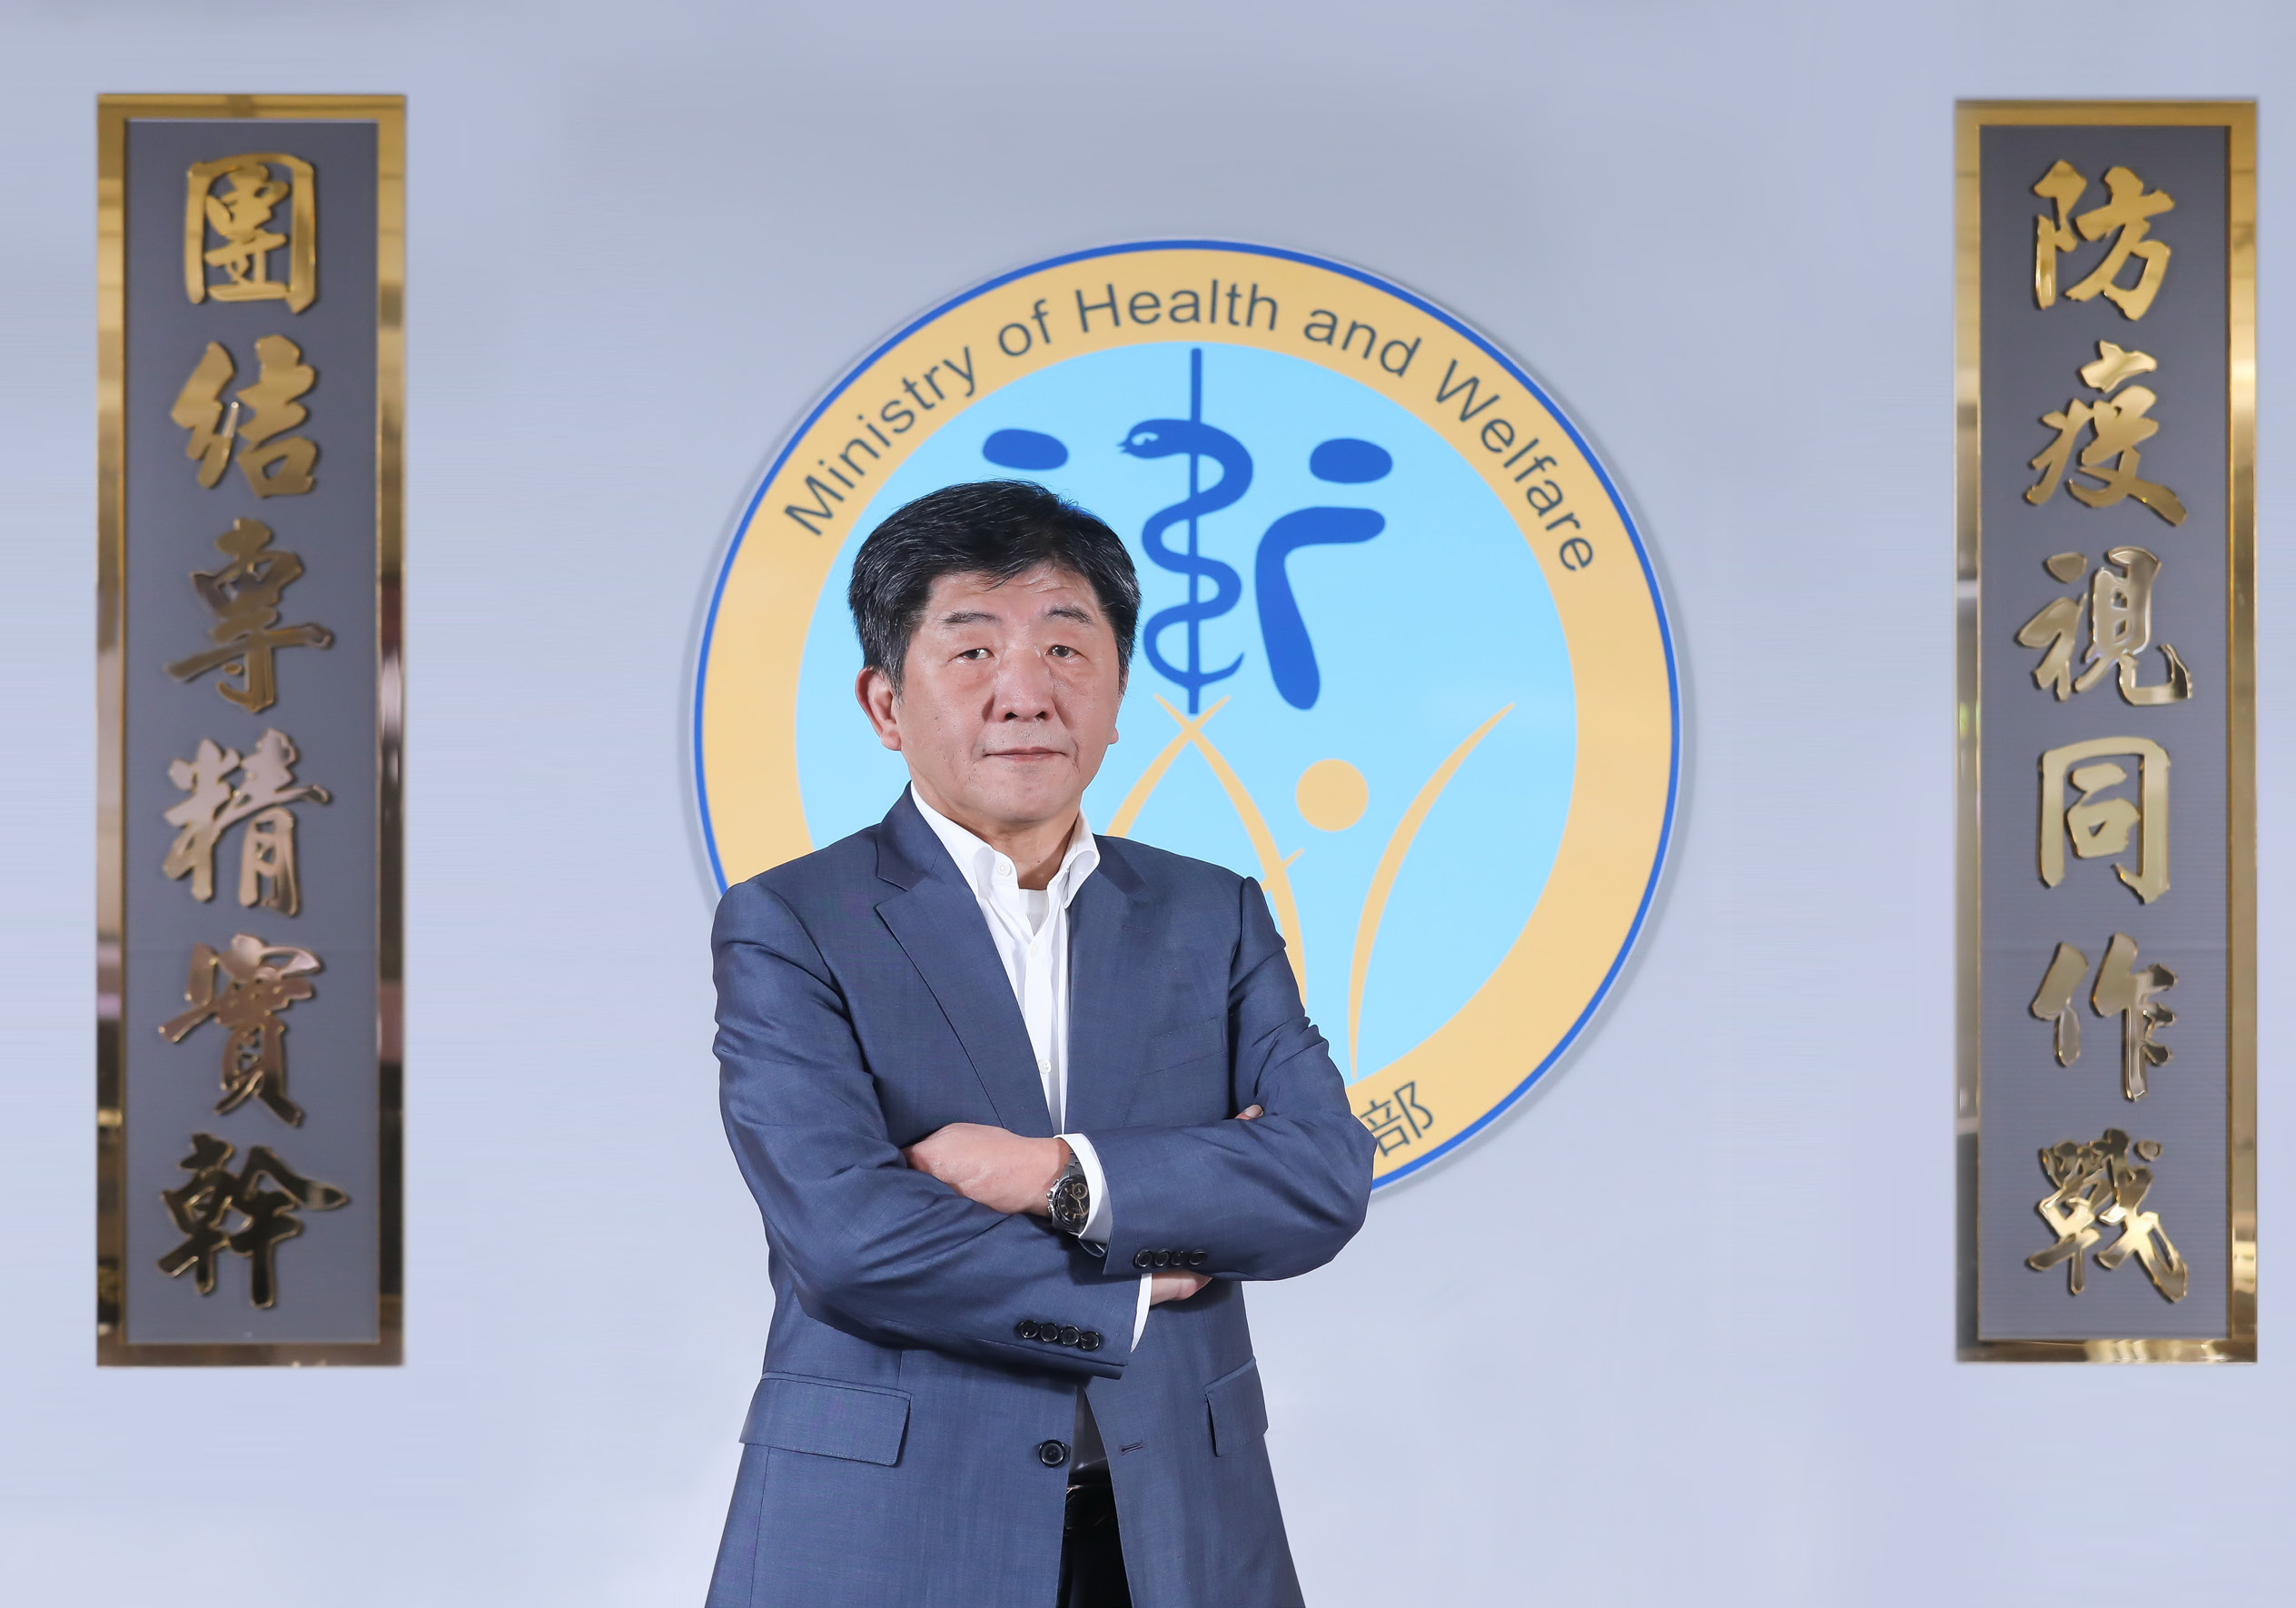 WHO article by Taiwan's Minister of Health and Welfare Dr. CHEN Shih-Chung